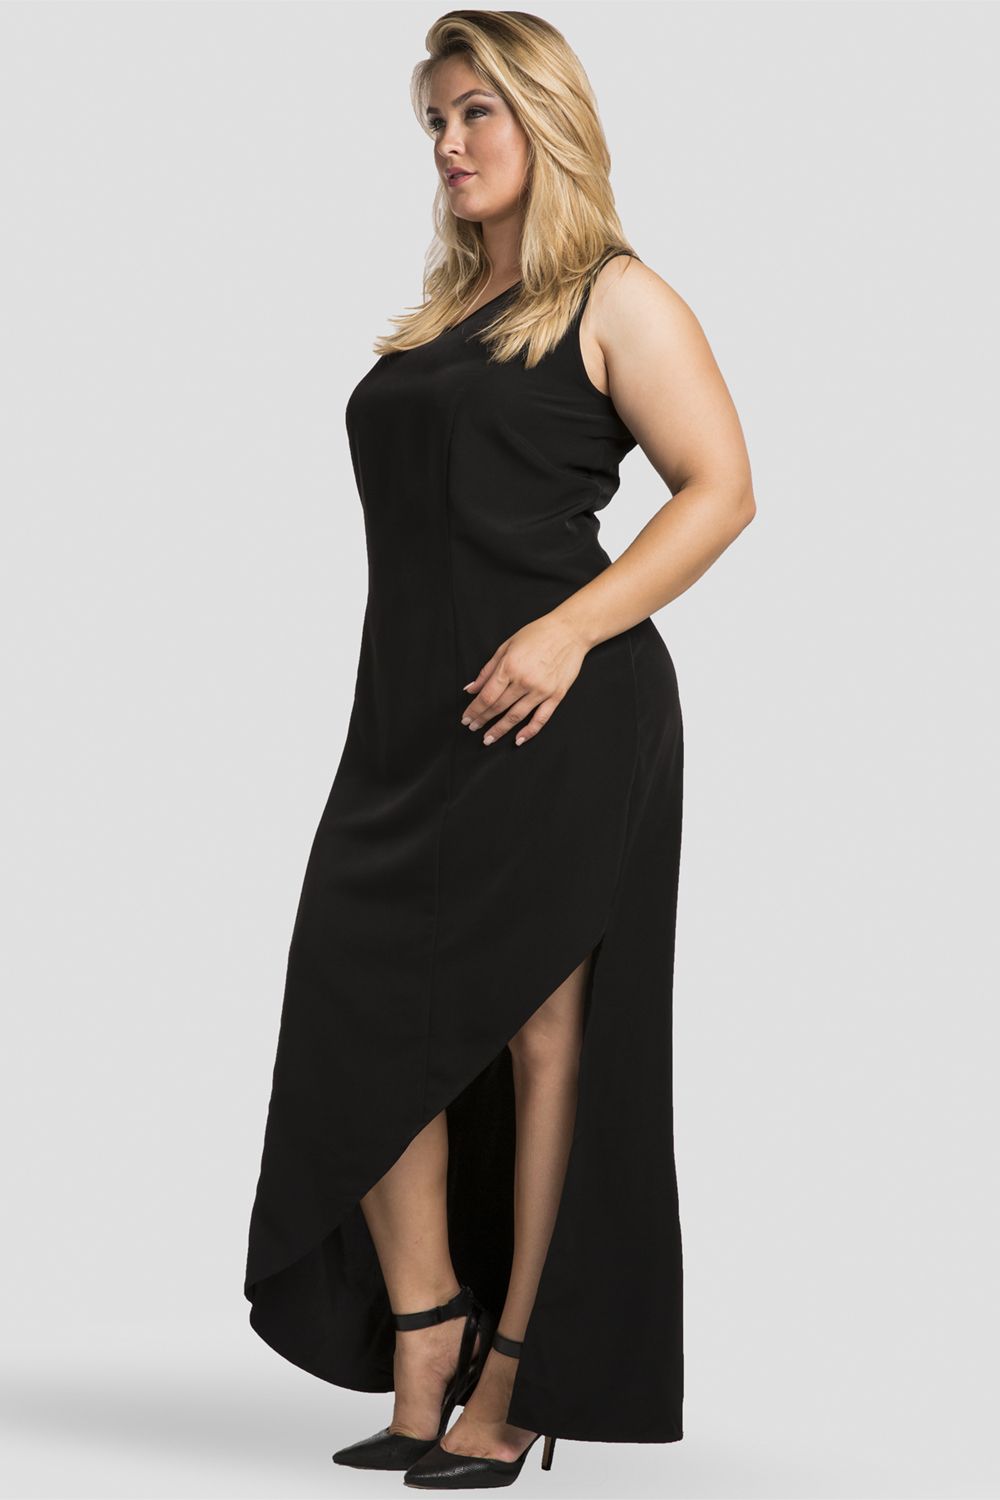 Black and white asymmetrical dress up women are they